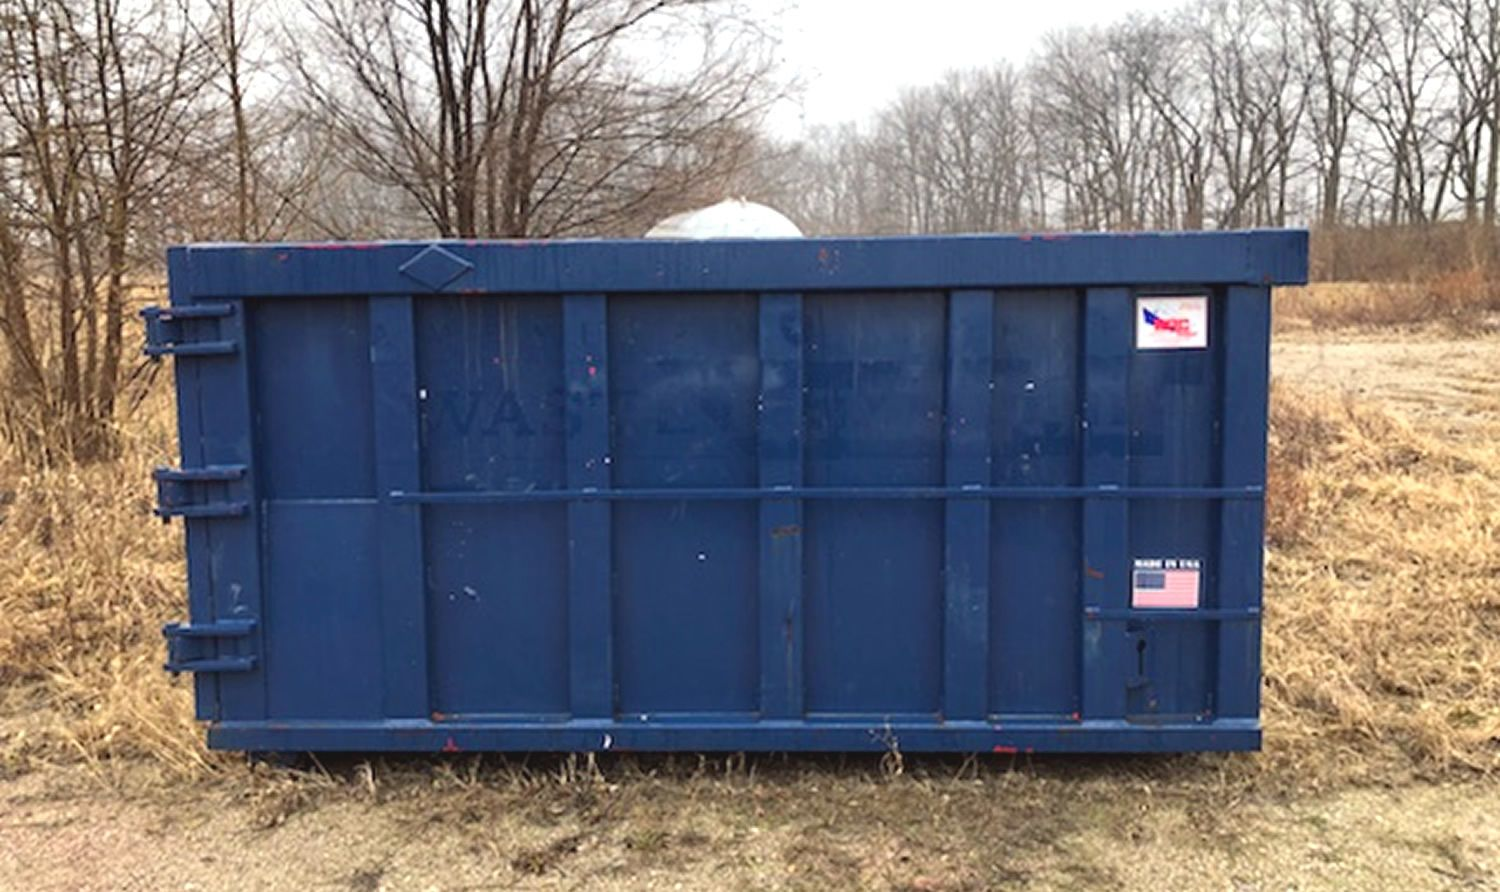 Dumpster Rental Containers-Collier County Waste Dumpster Rentals Services-We Offer Residential and Commercial Dumpster Removal Services, Portable Toilet Services, Dumpster Rentals, Bulk Trash, Demolition Removal, Junk Hauling, Rubbish Removal, Waste Containers, Debris Removal, 20 & 30 Yard Container Rentals, and much more!